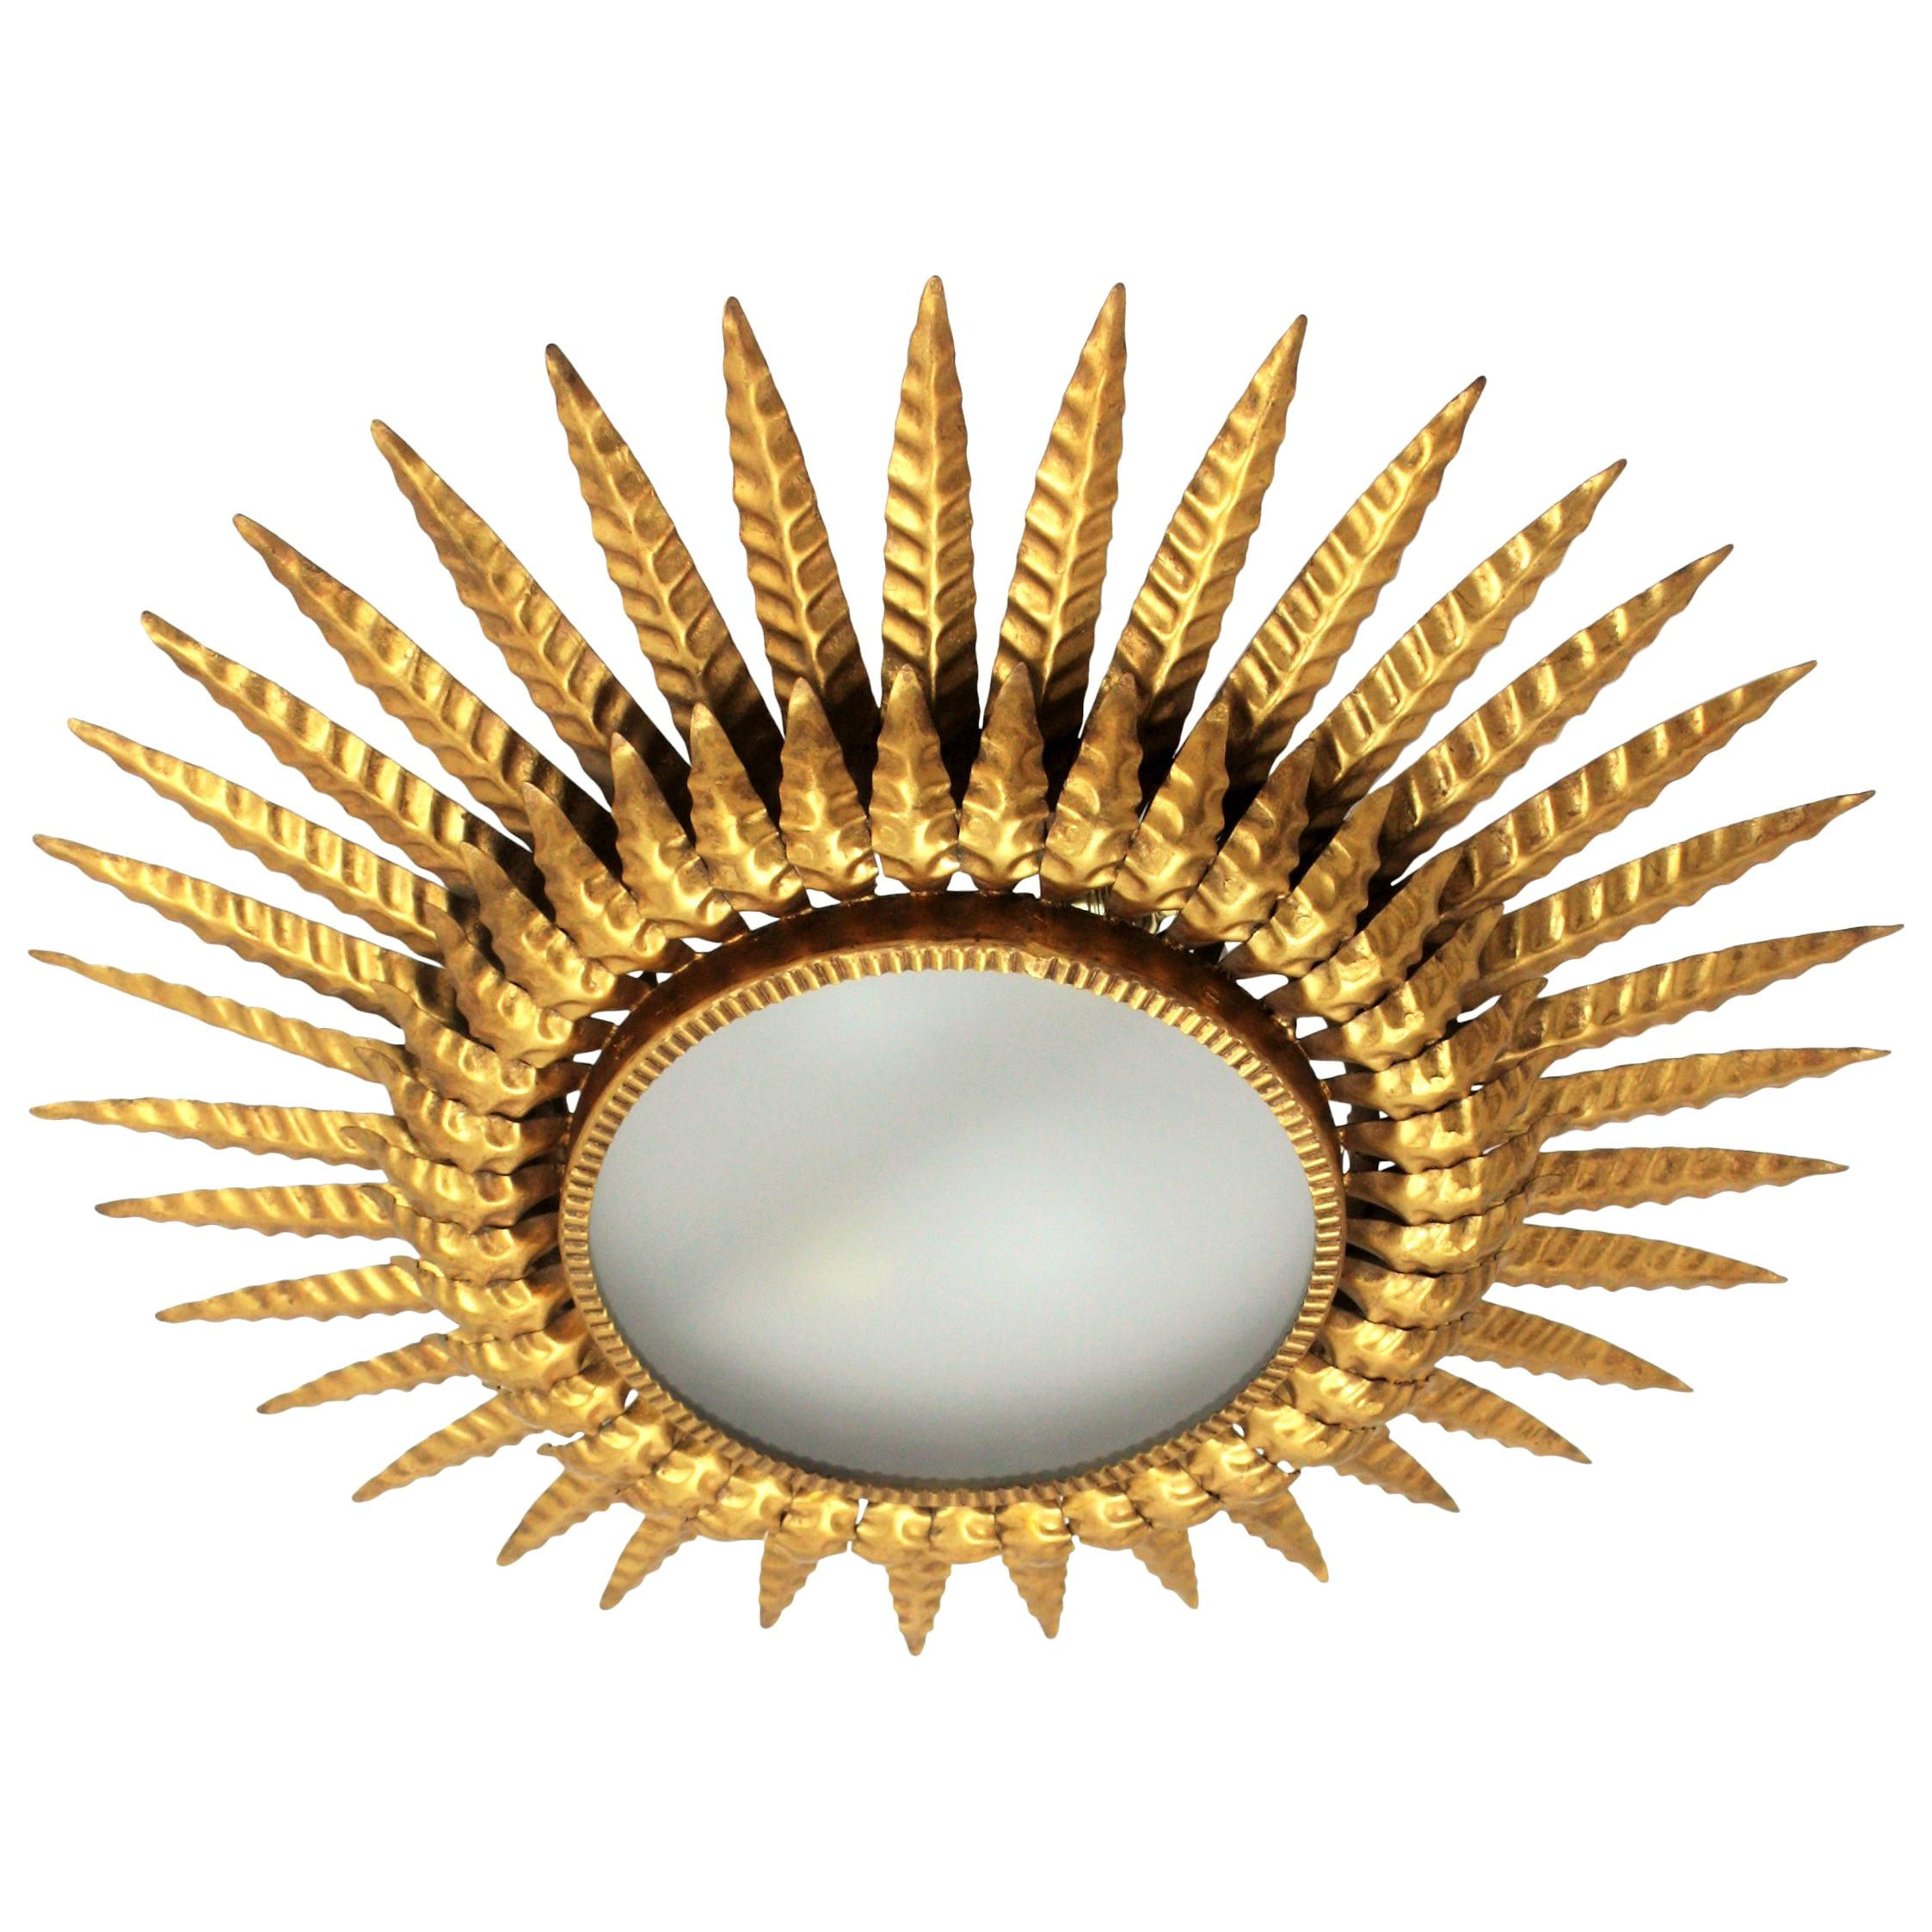 Sunburst Flush Mount, Wall Light or Mirror, Gilt Metal and Frosted Glass